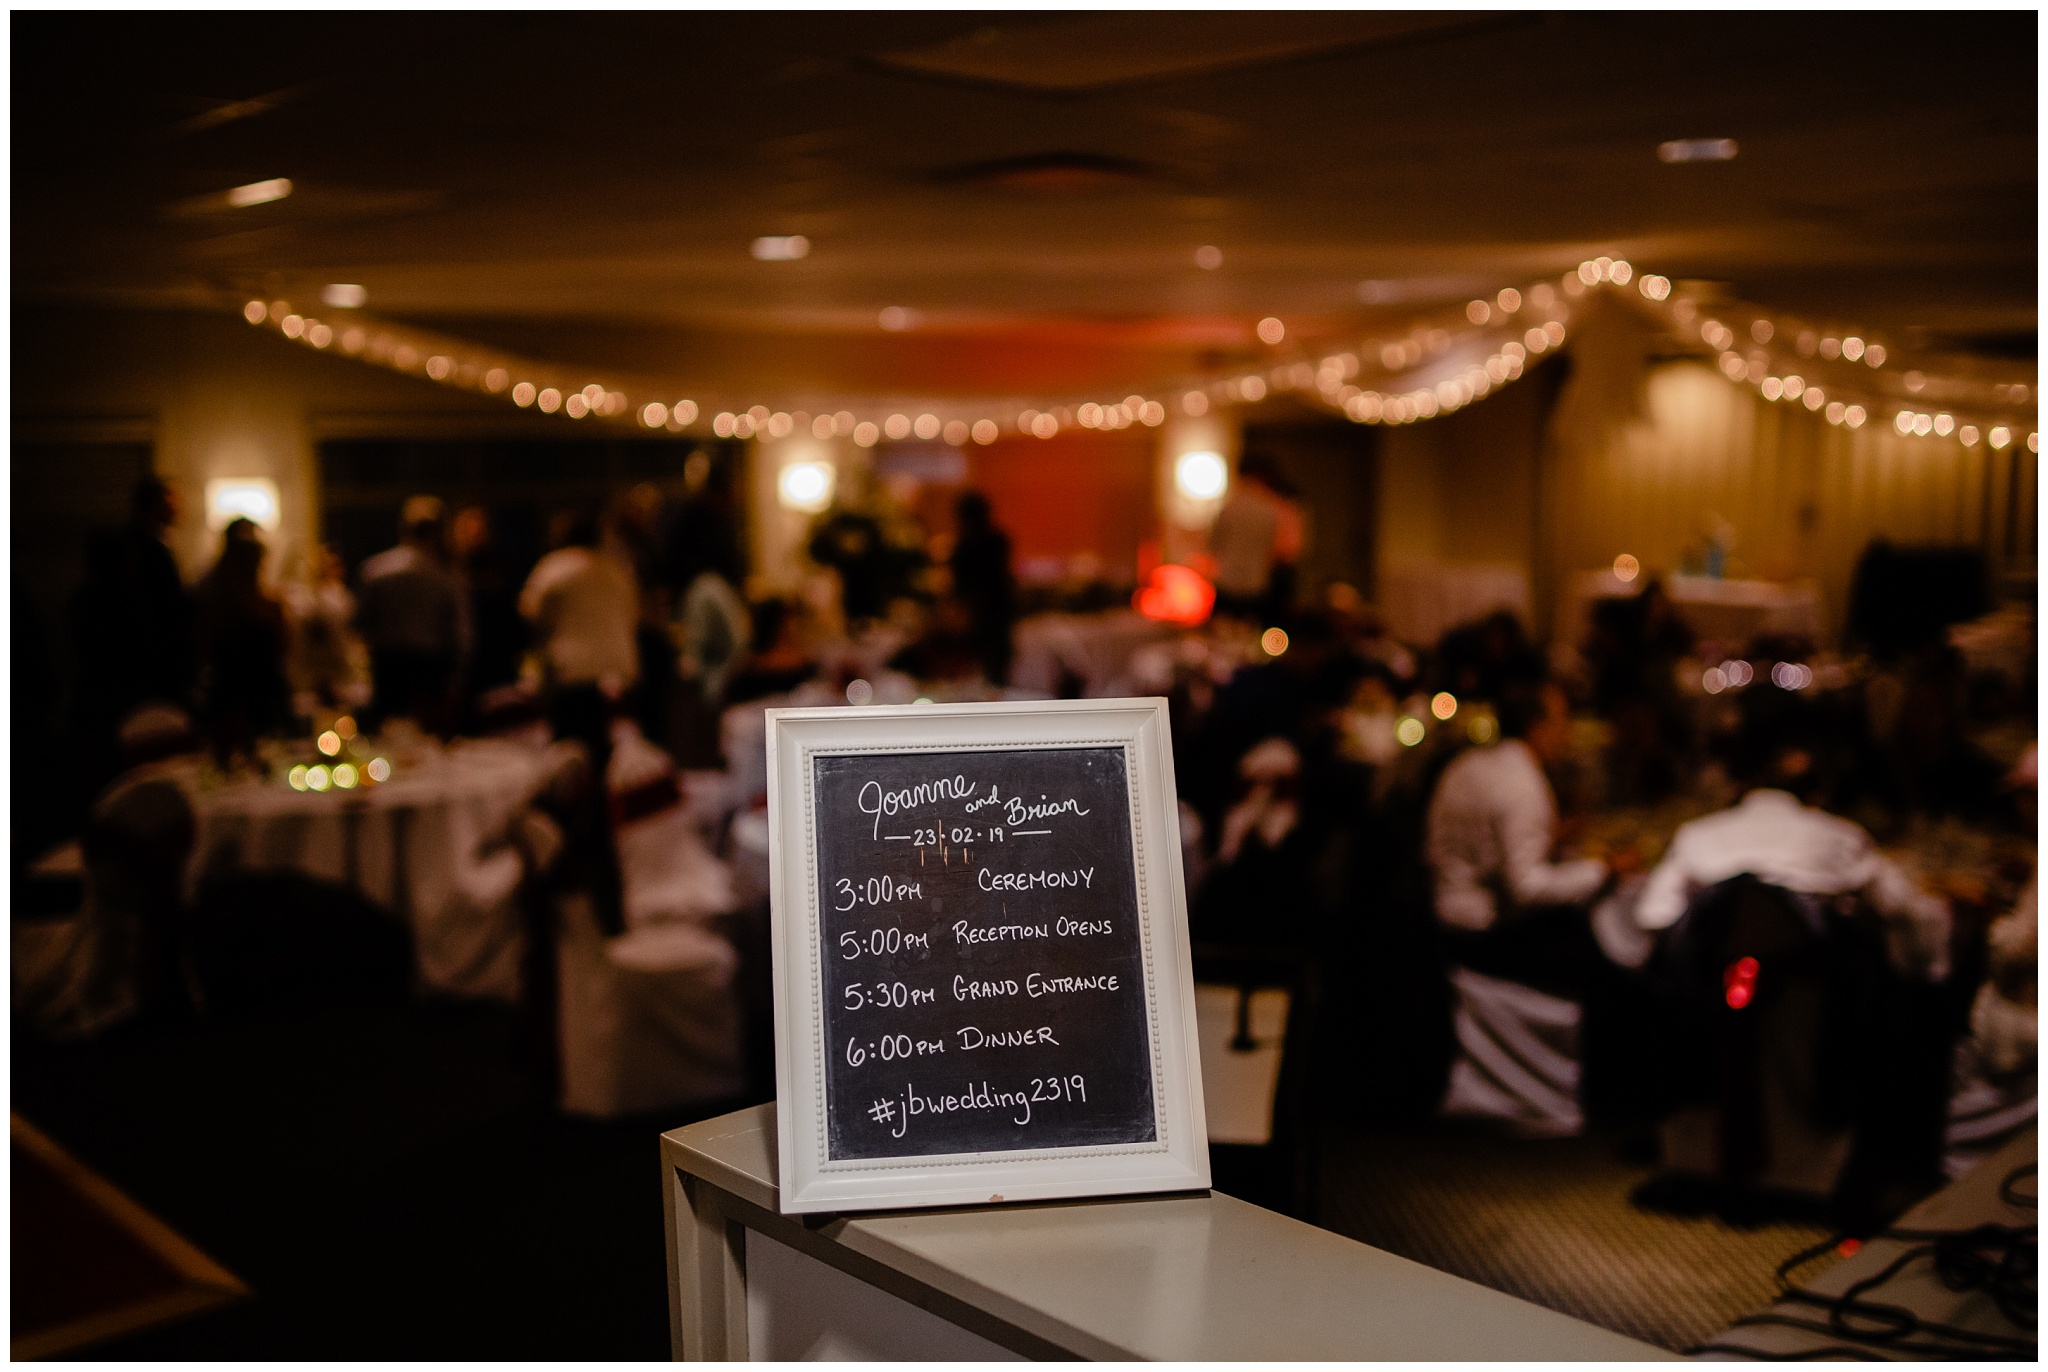 White Rock Intimate Wedding 5 Star Catering Venue Surrey BC Middle Aged Couple_0017.jpg